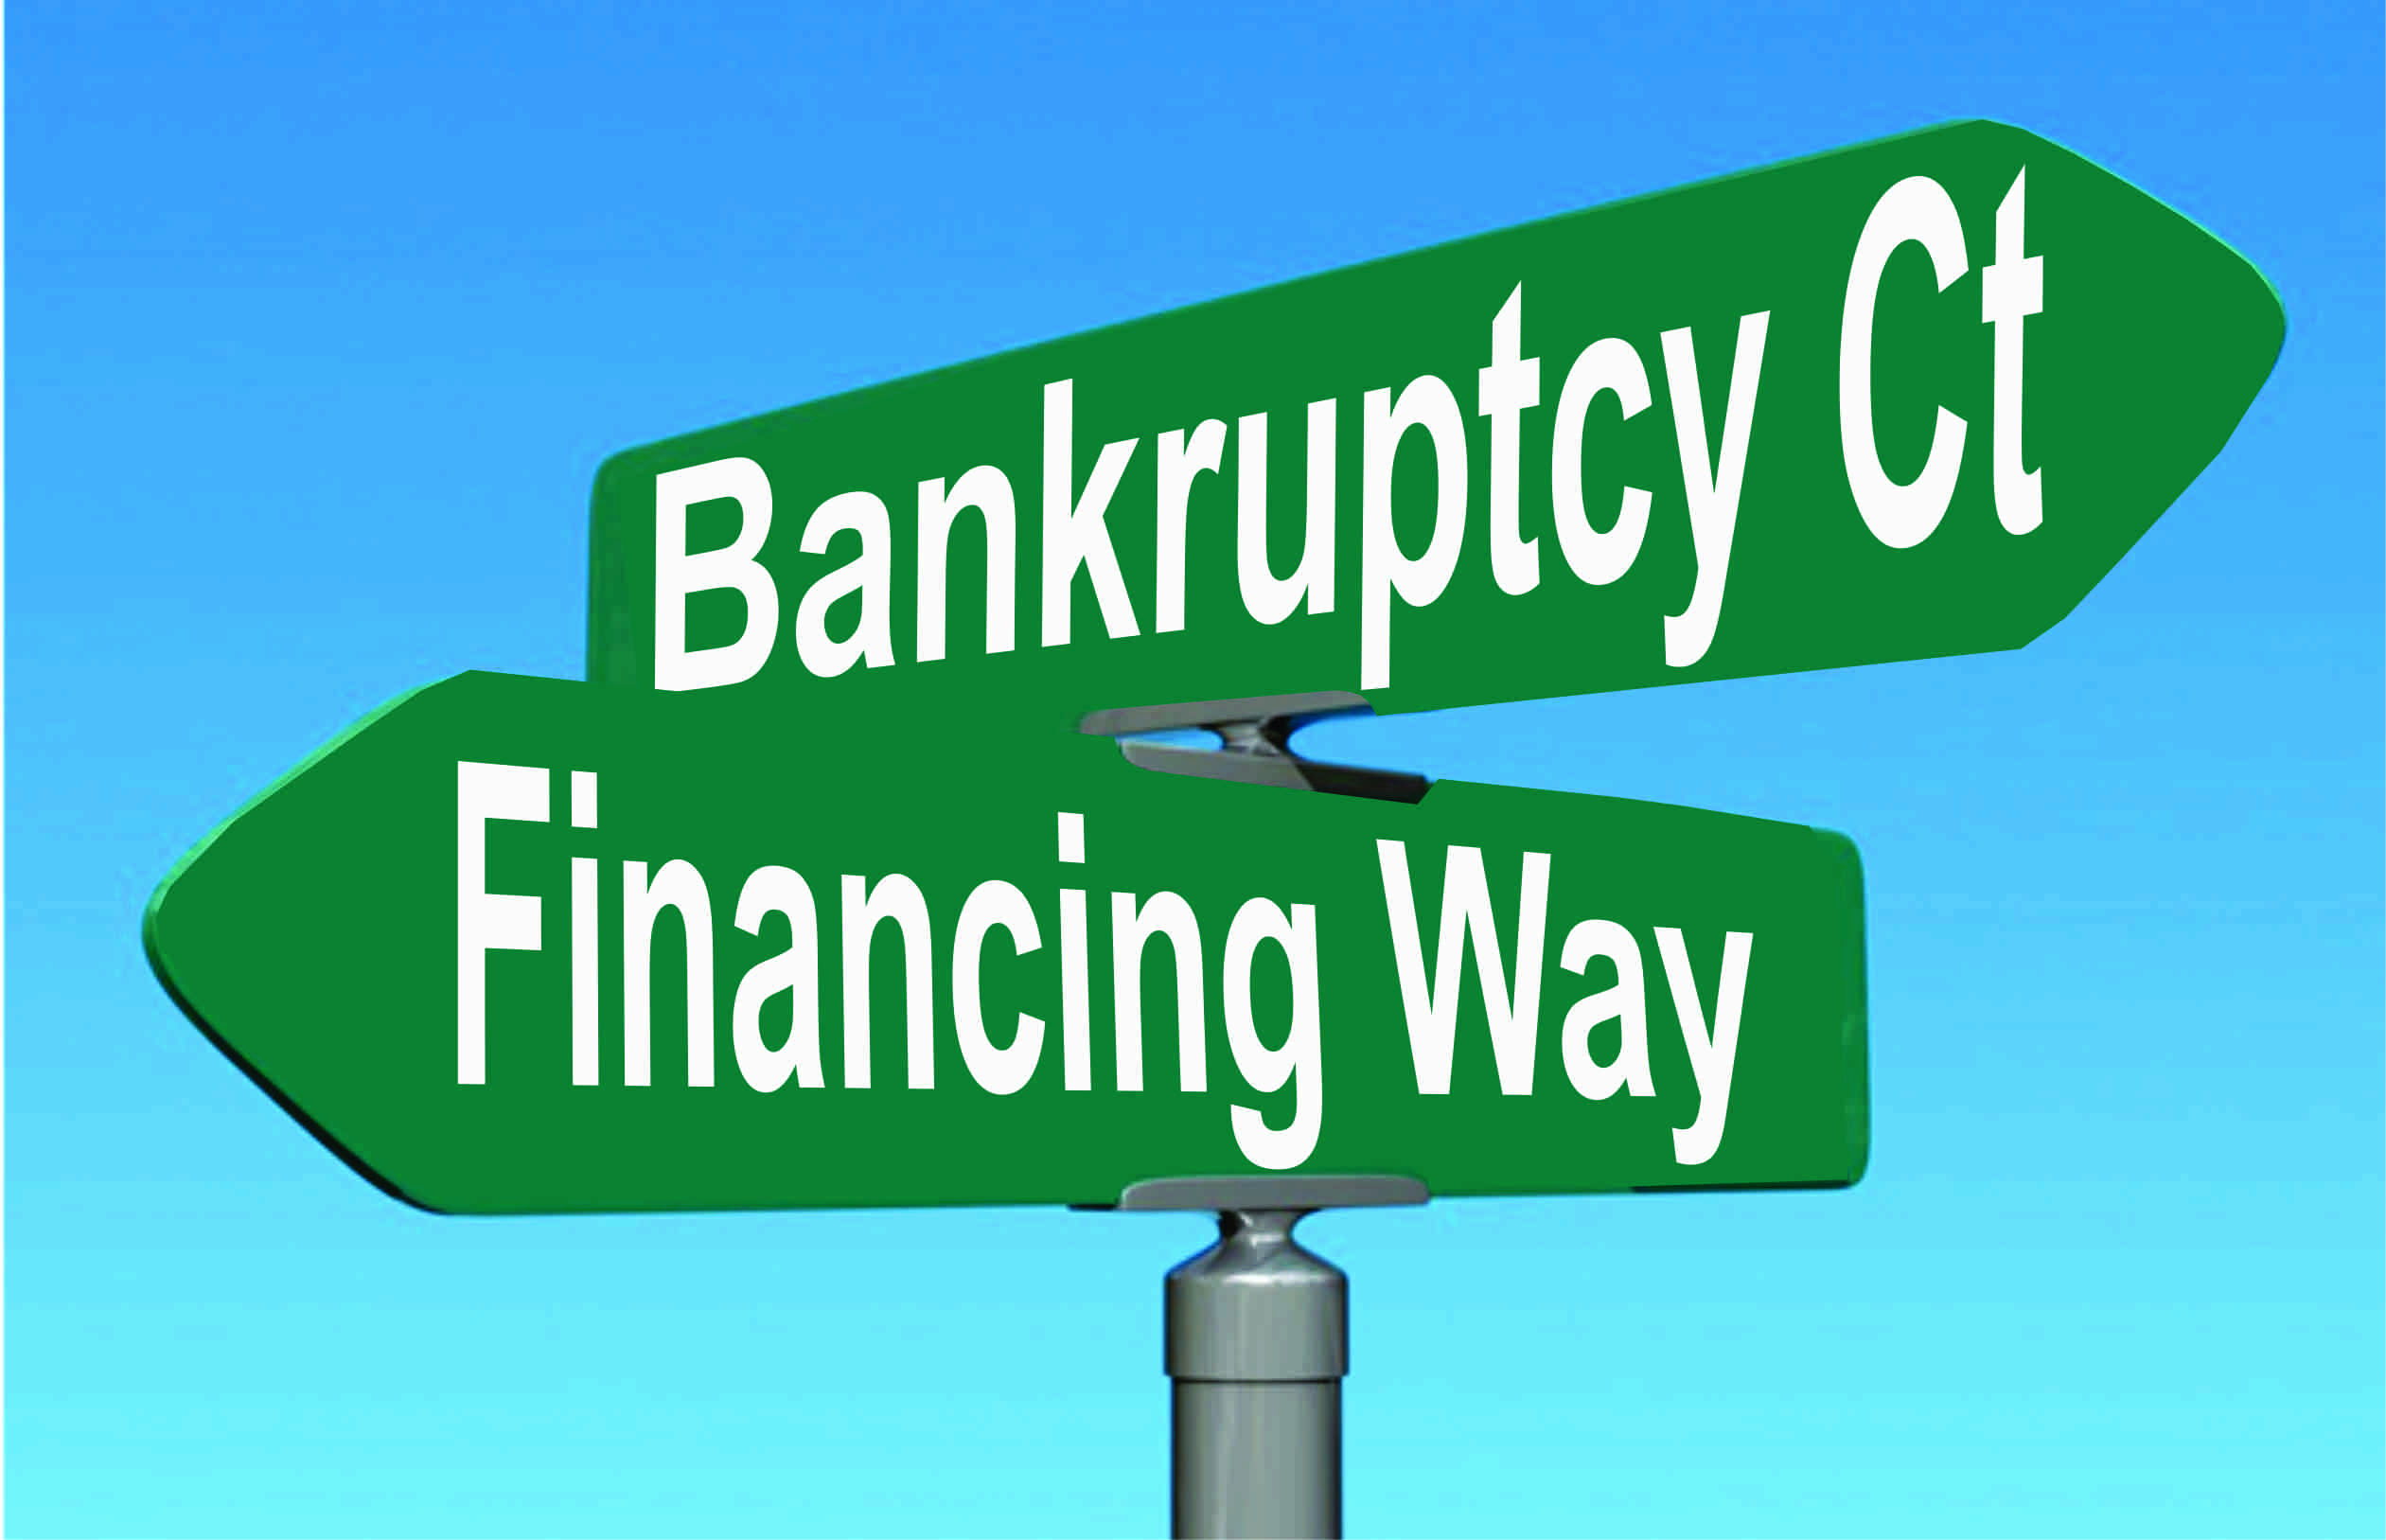 Times are tough: Survival Financing or Bankruptcy?